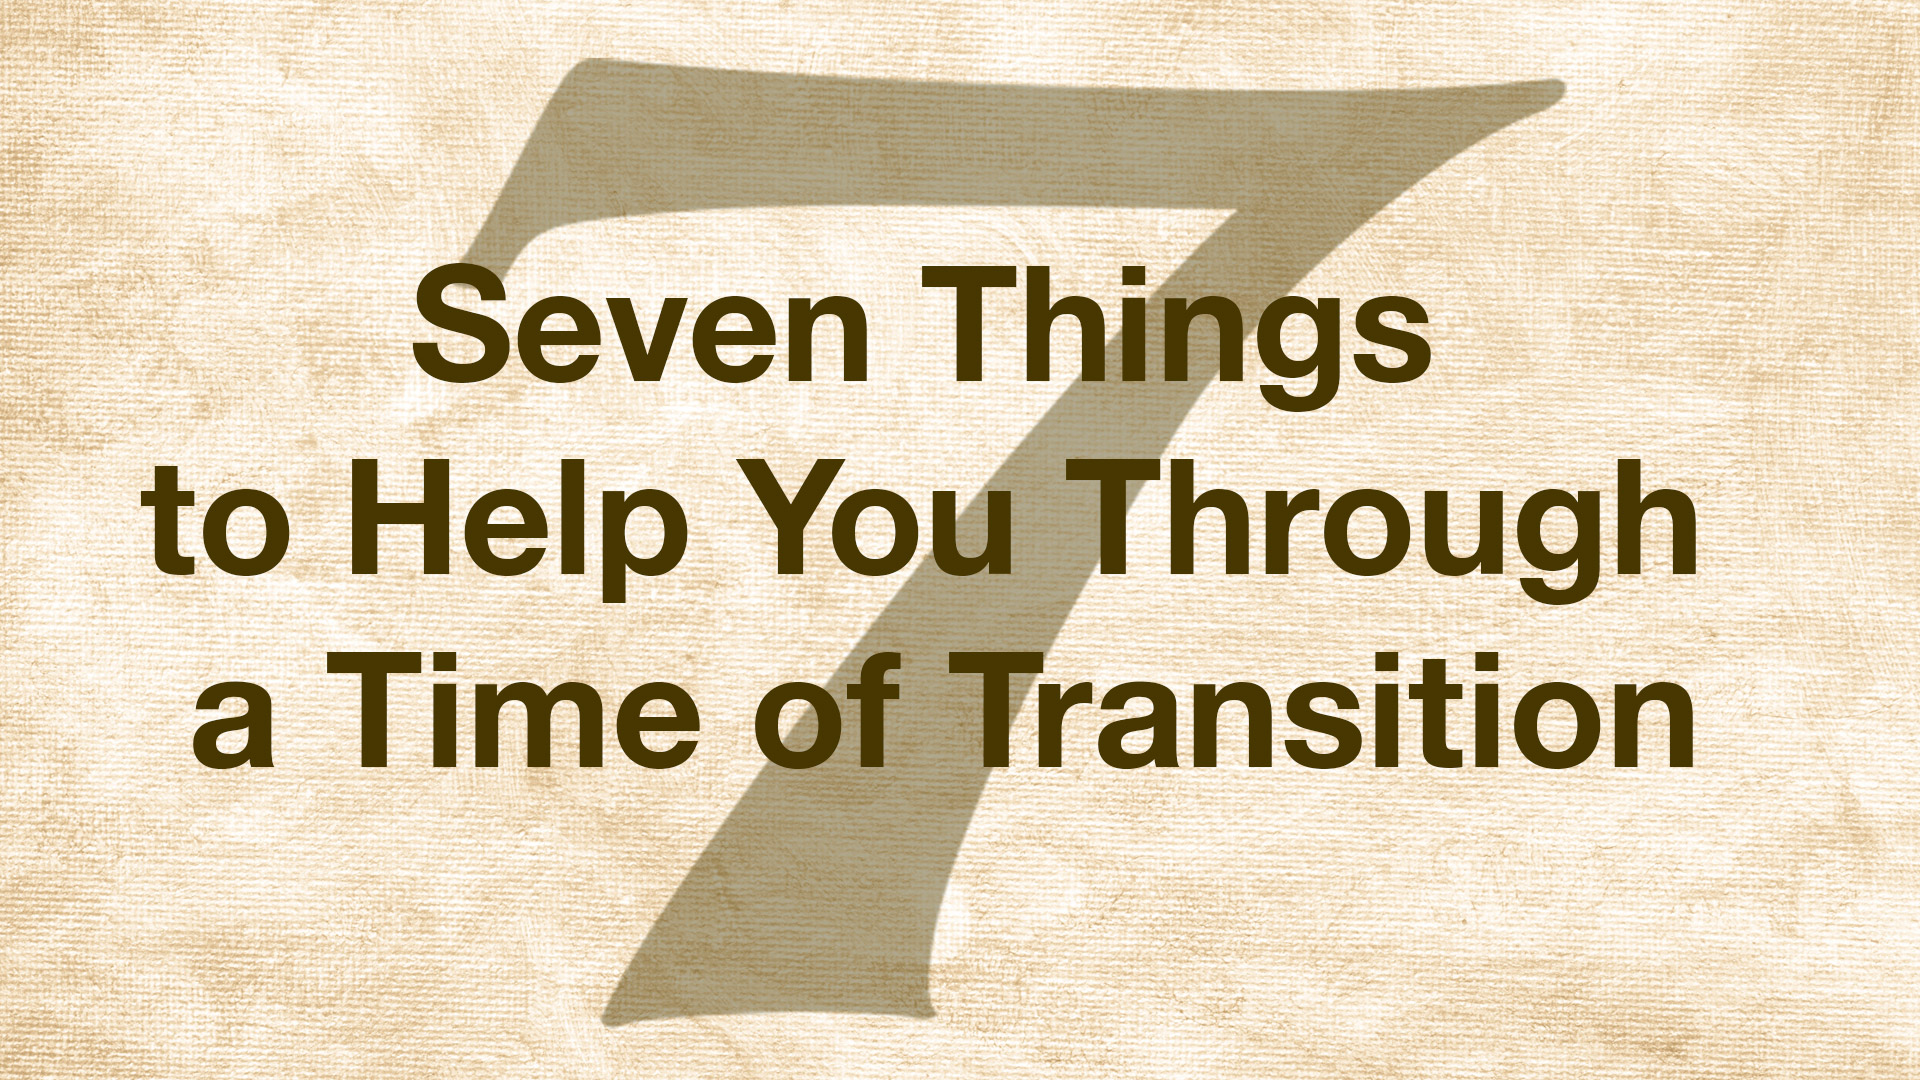 7-things-title.jpg